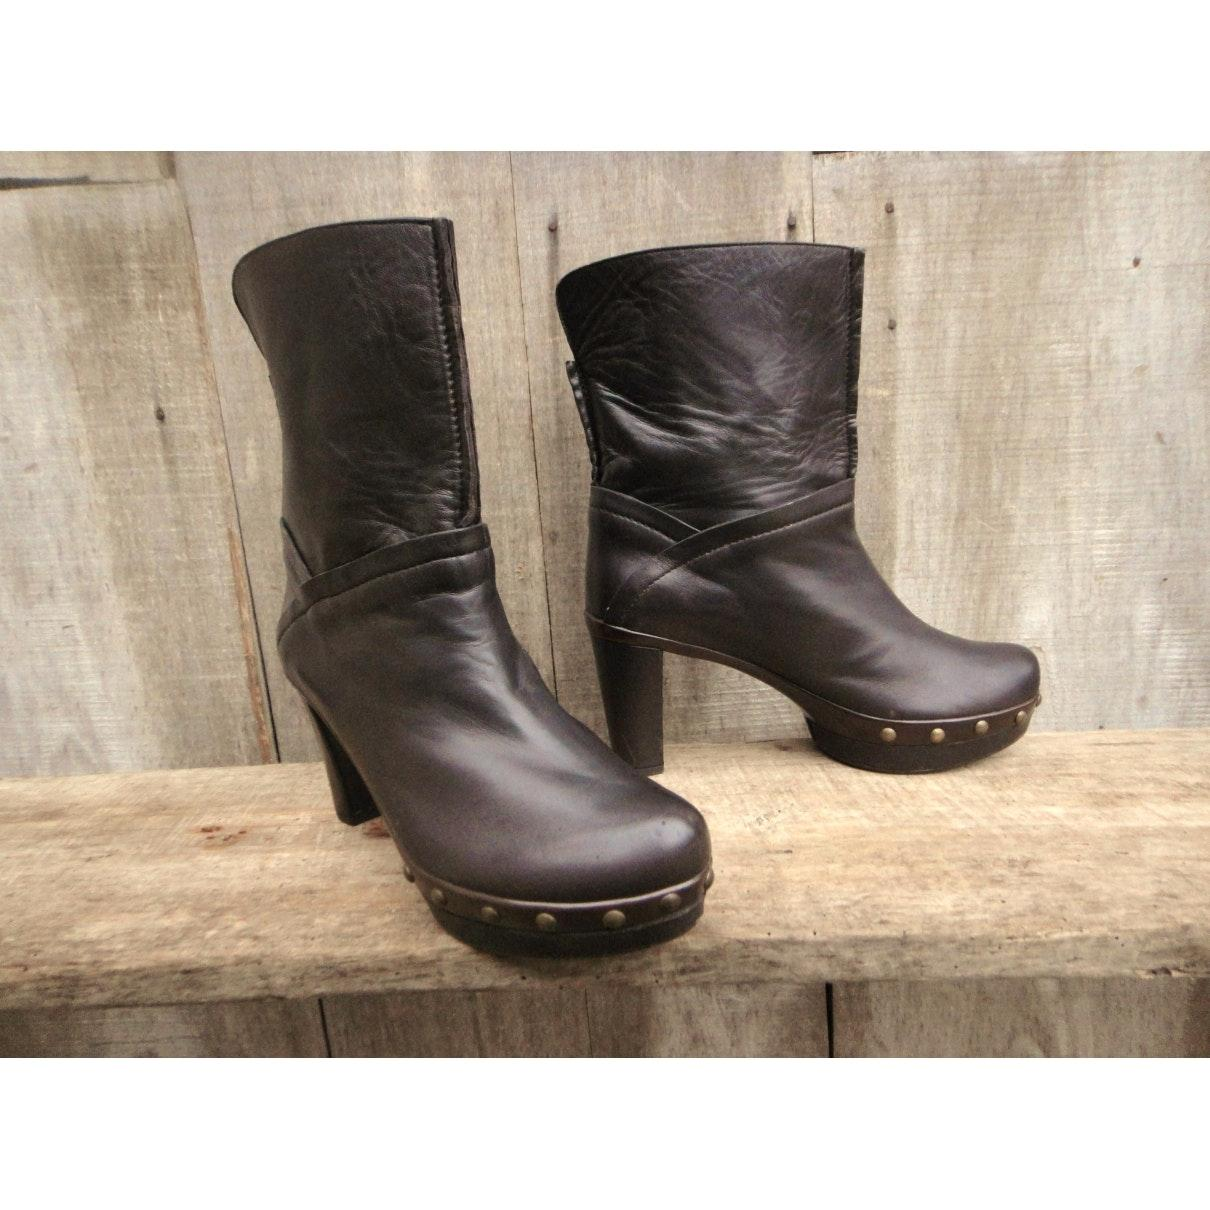 Stuart Weitzman n Brown Leather Ankle Boots